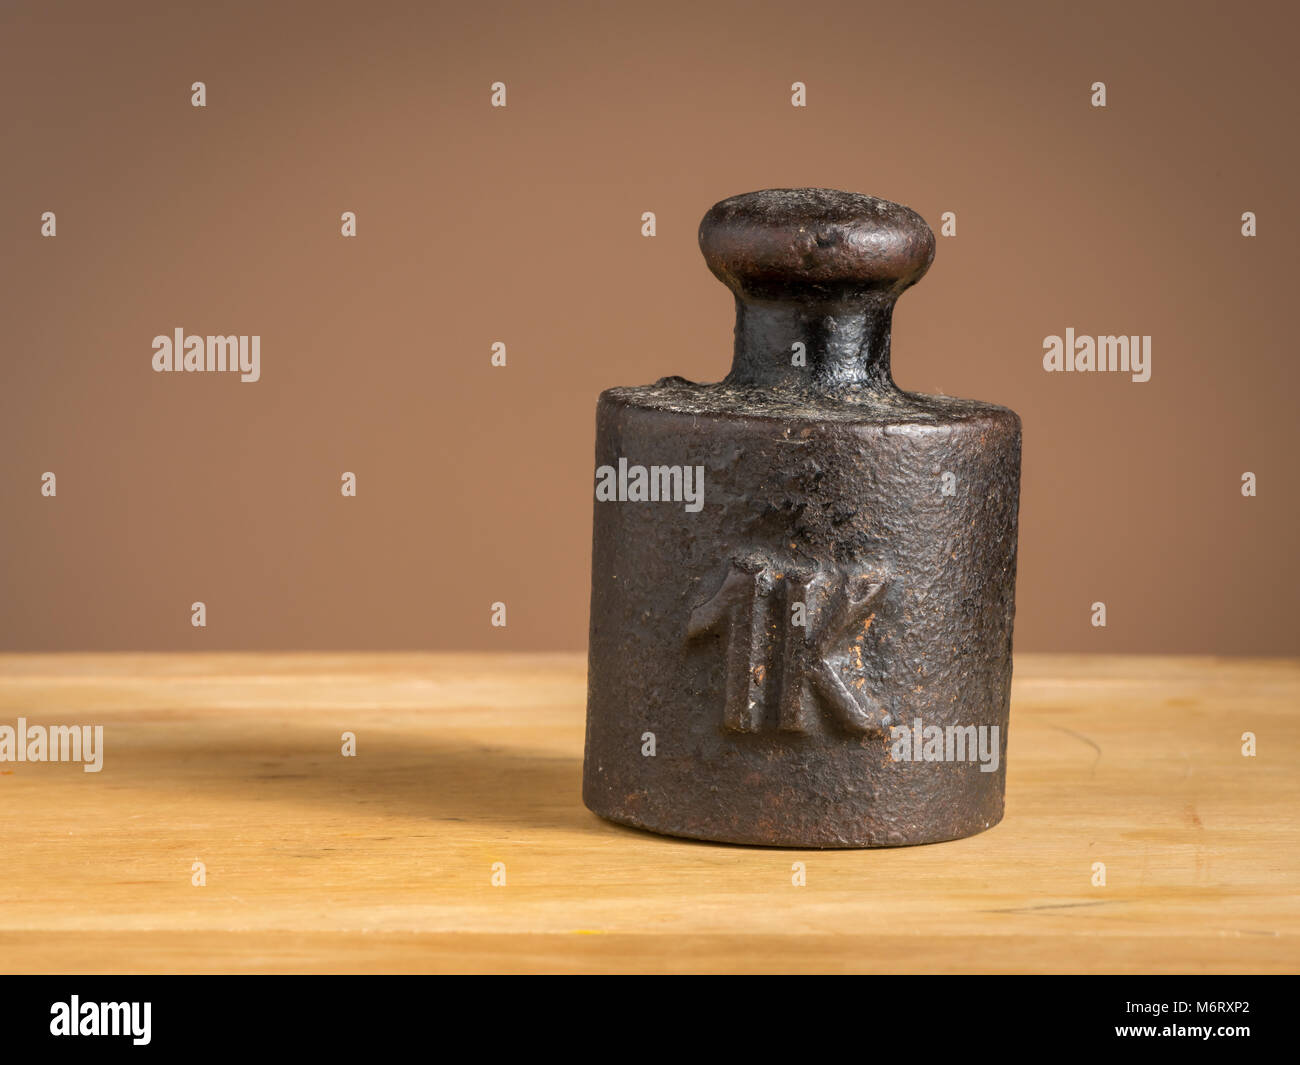 Old black iron 1kg weight for a kitchen scale standing on a table - Stock Image